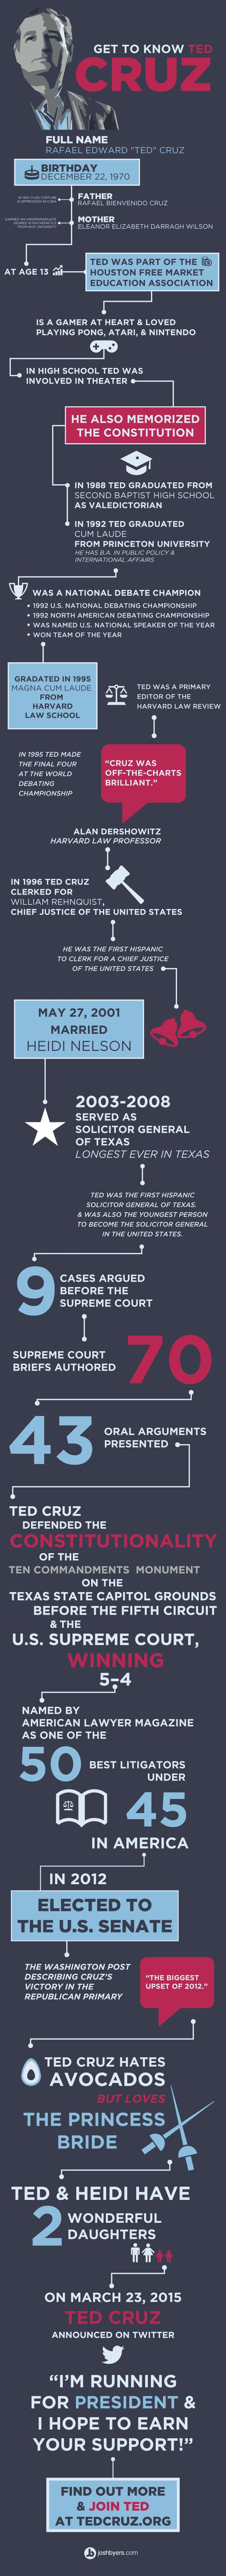 Who Is Ted Cruz? Find out fun and facts in this infographic.